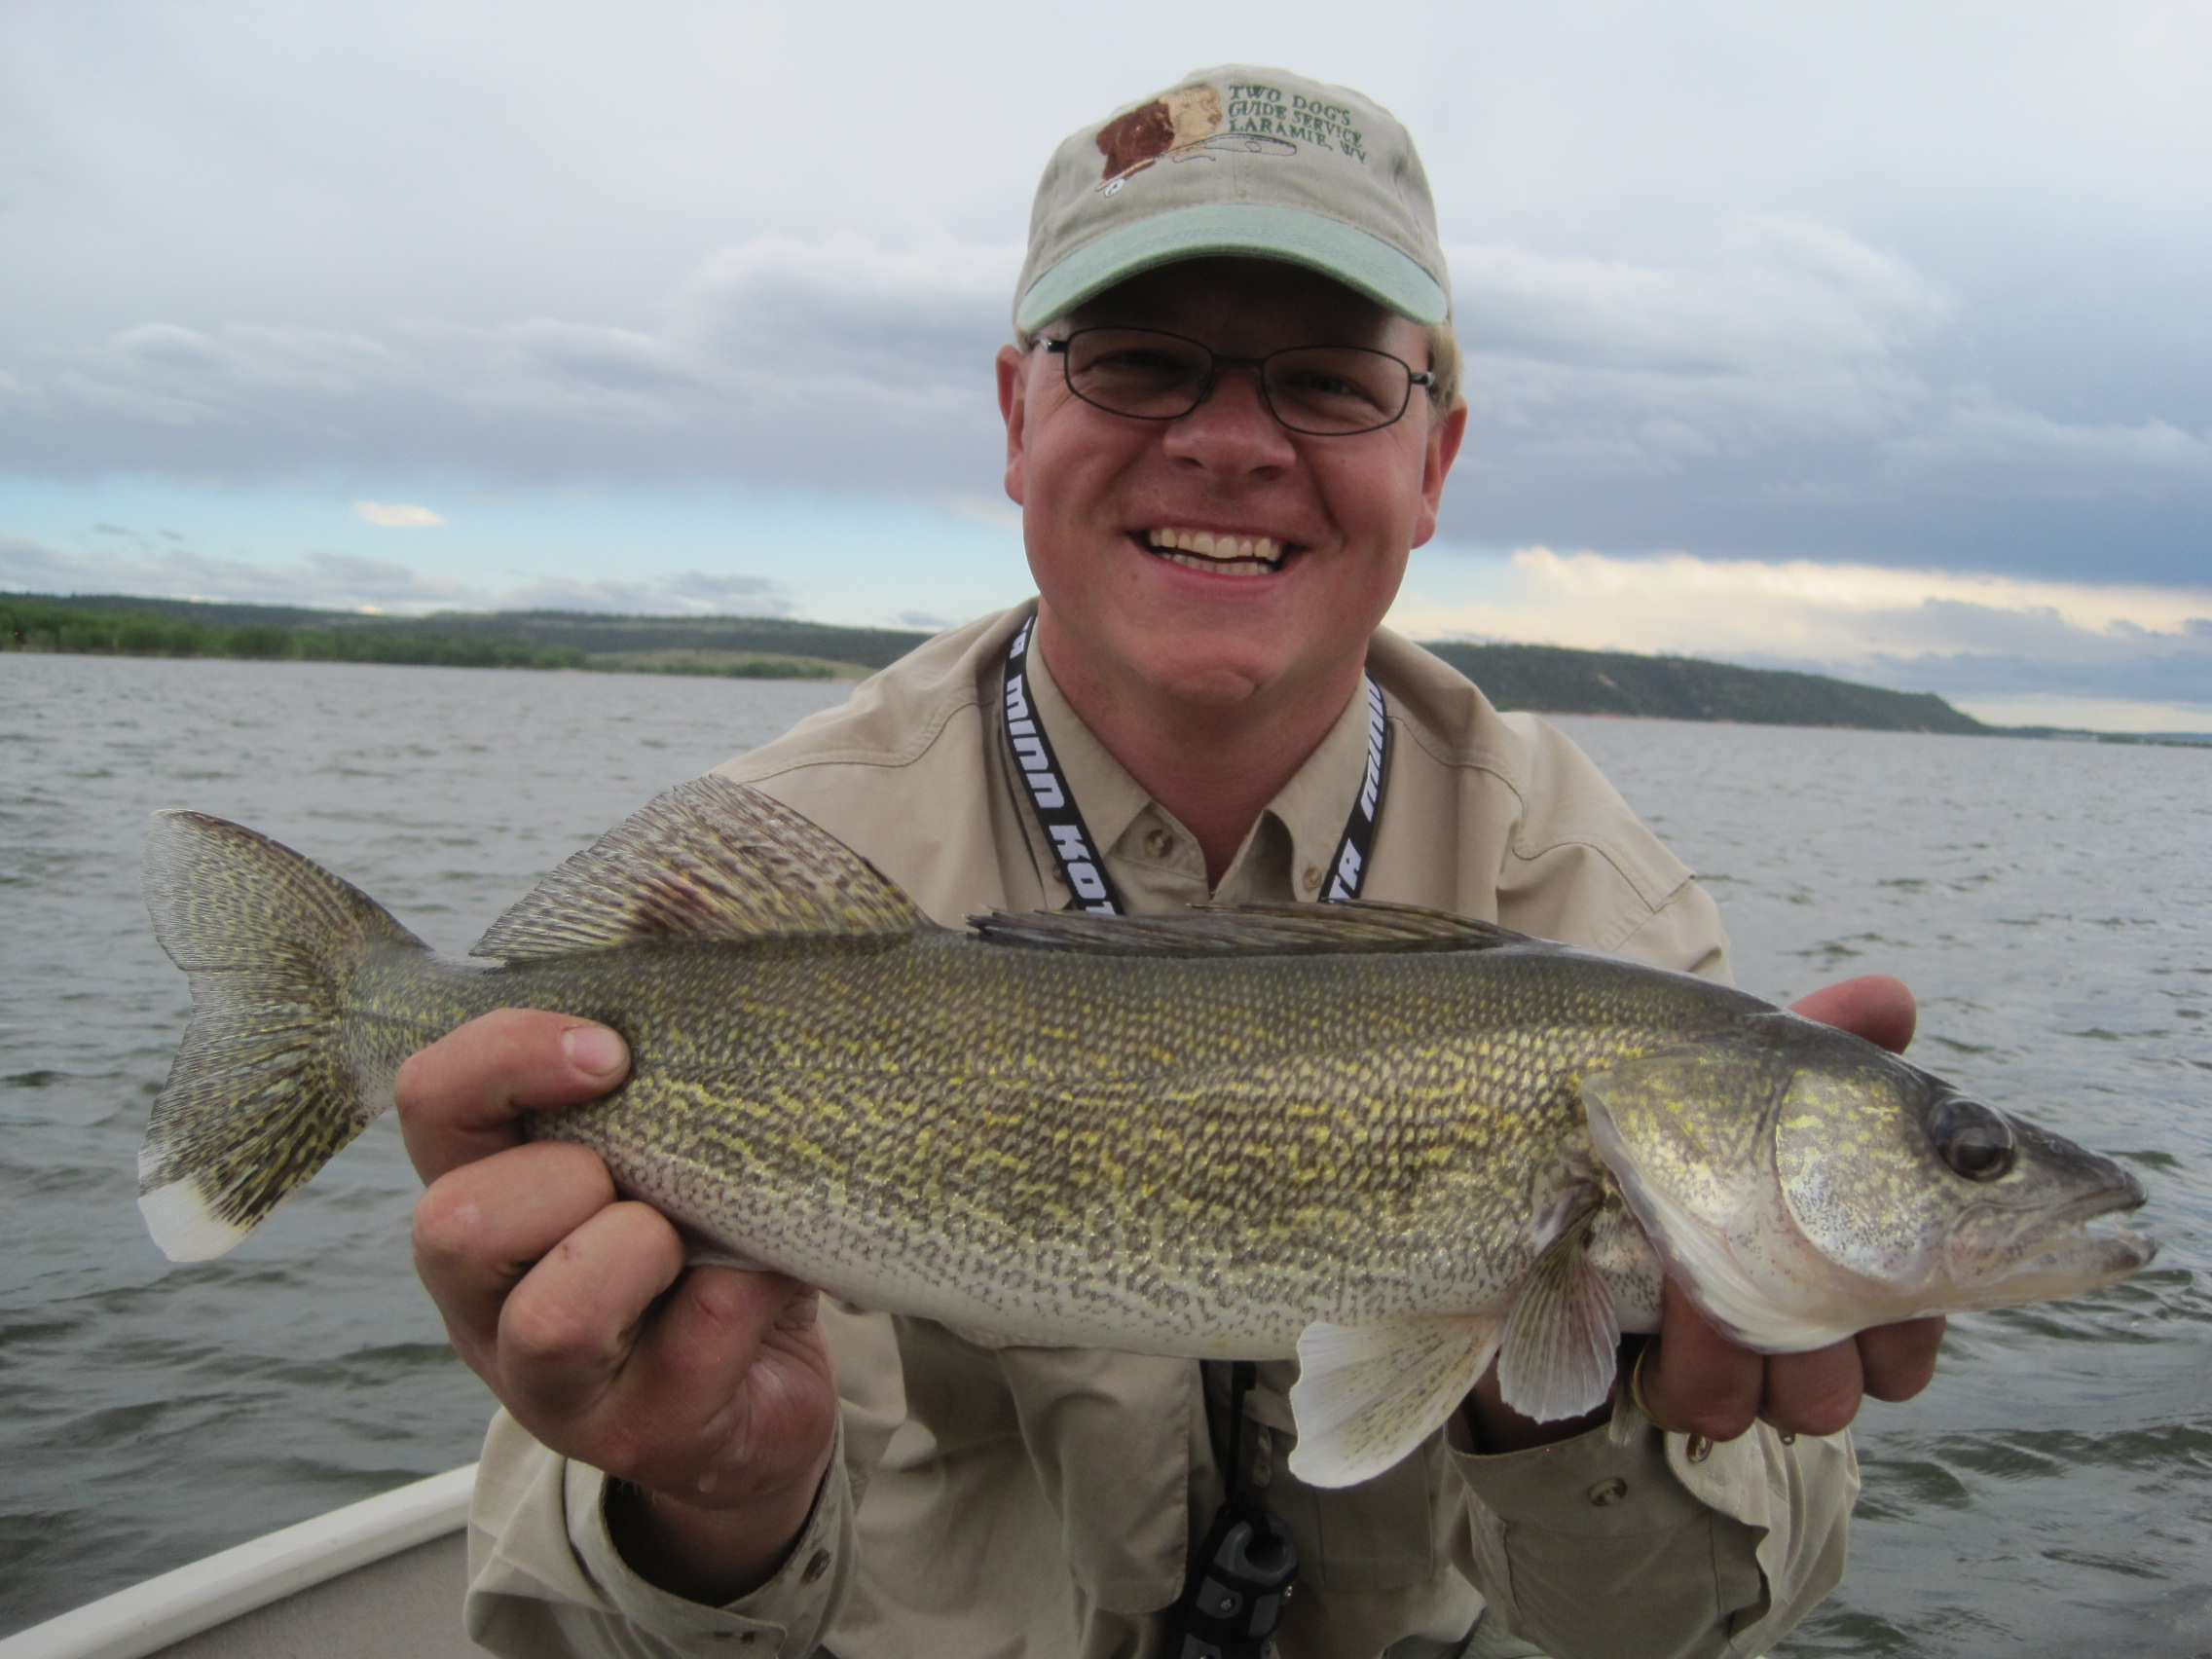 Walleye fishing in wyoming two dogs guide service for Fishing for walleye